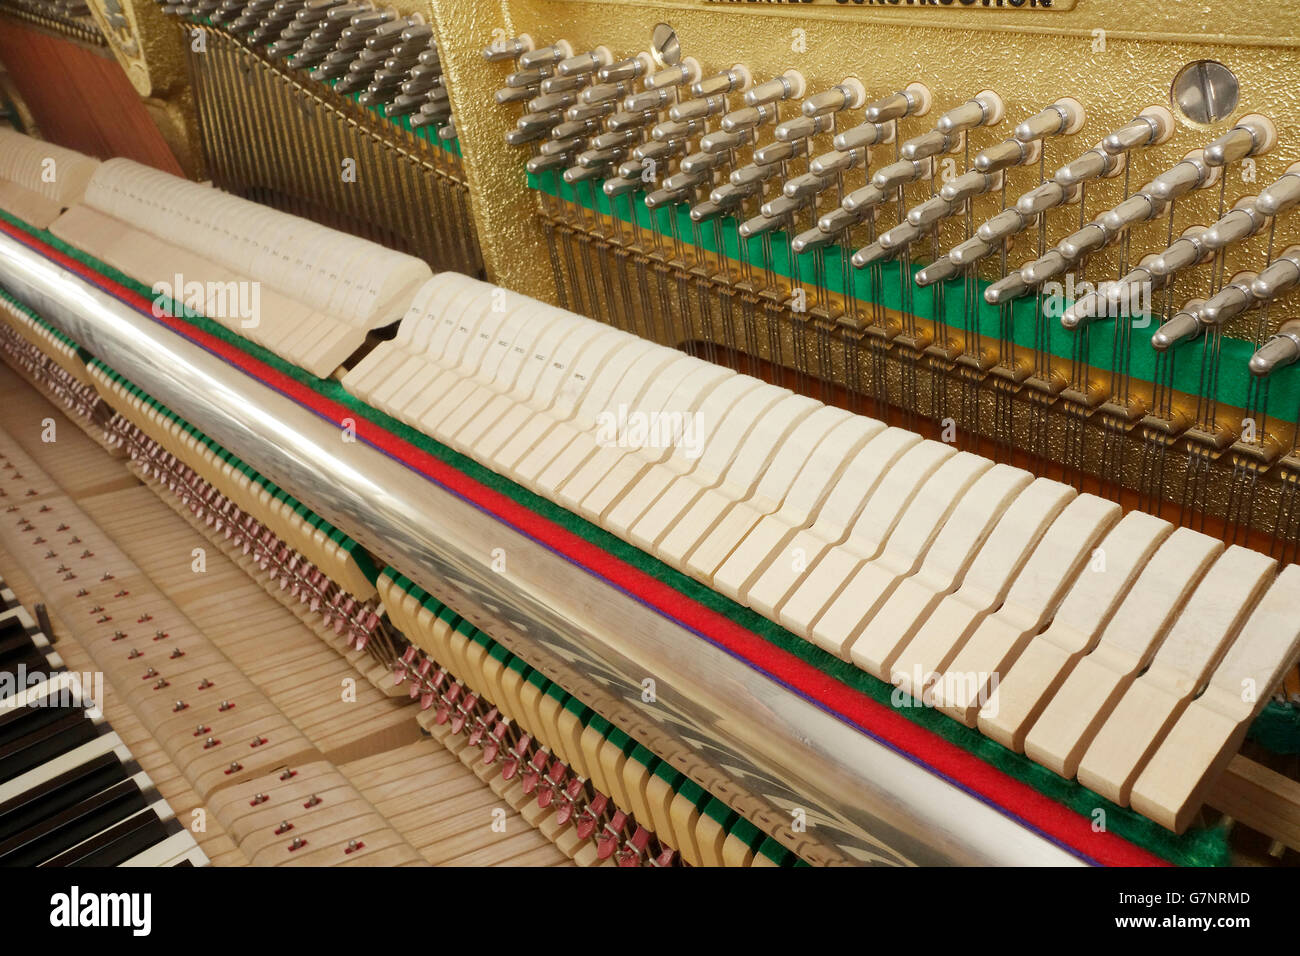 Diagonal view of an upright piano action mechanism. Keyboard, hammer rail, hammers and tuning pins on pin block - Stock Image